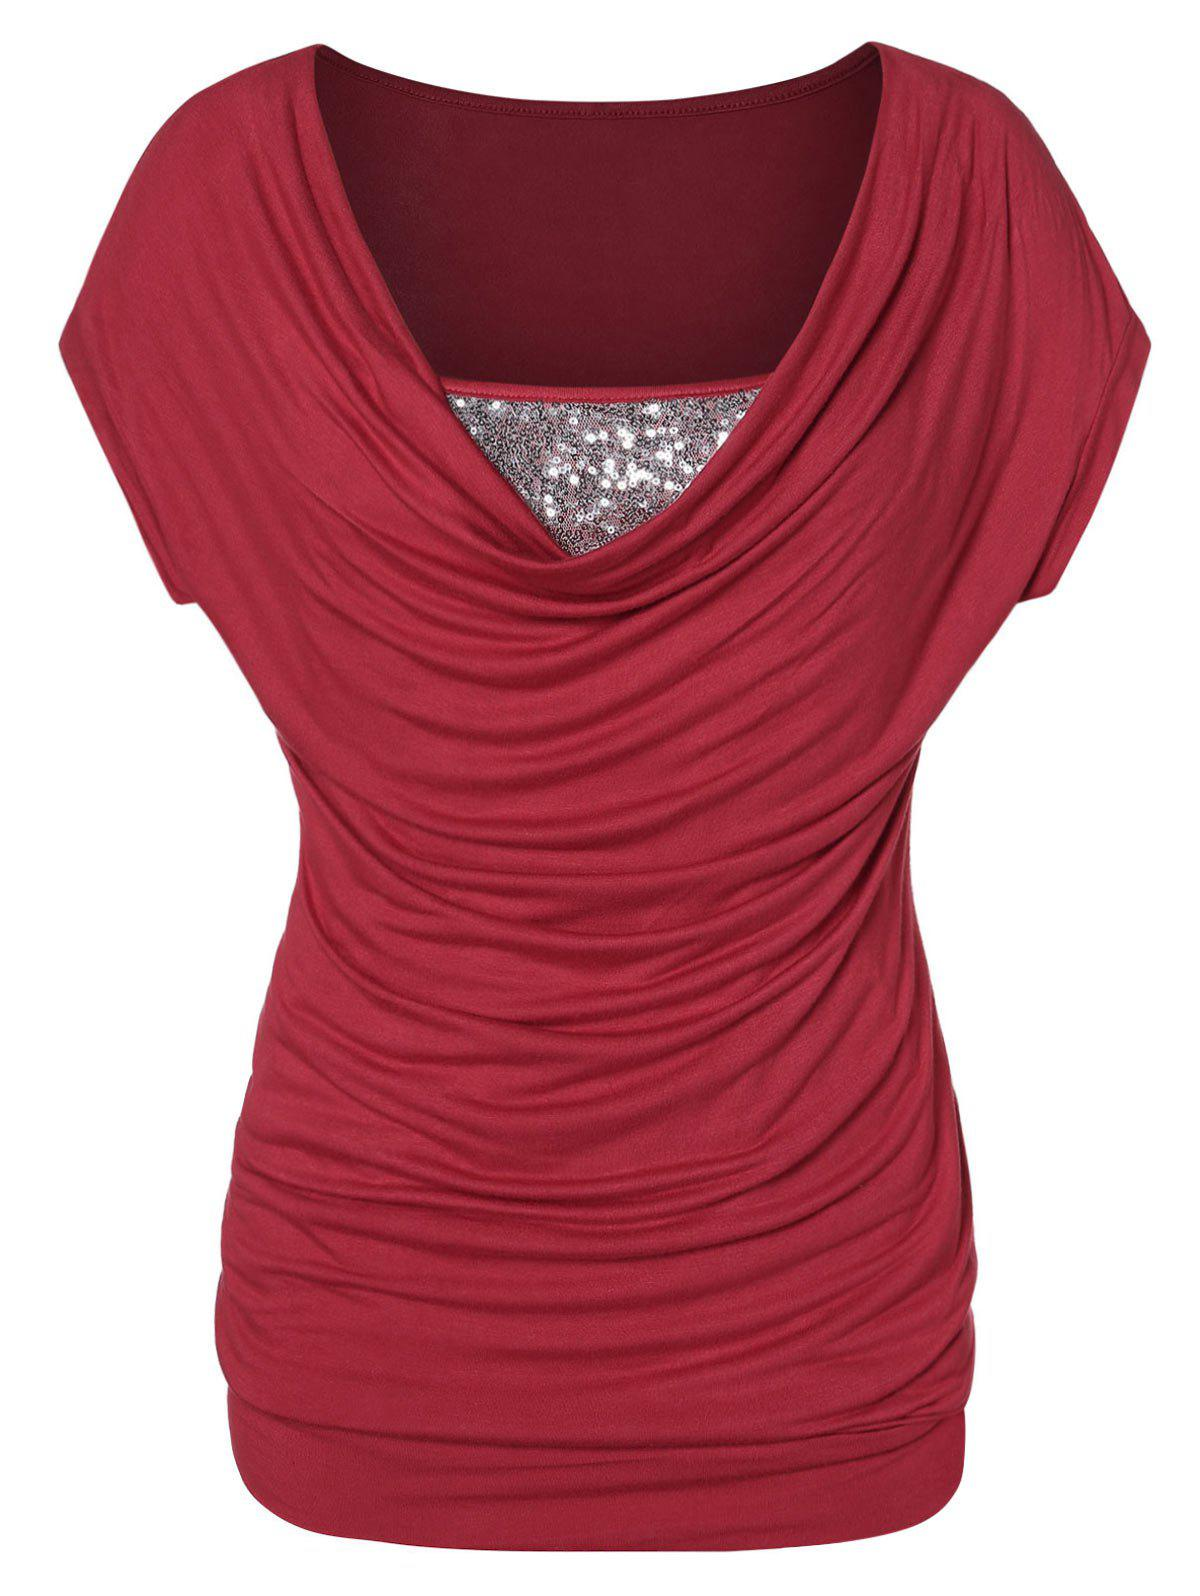 New Plus Size Sequined Cowl Collar T Shirt